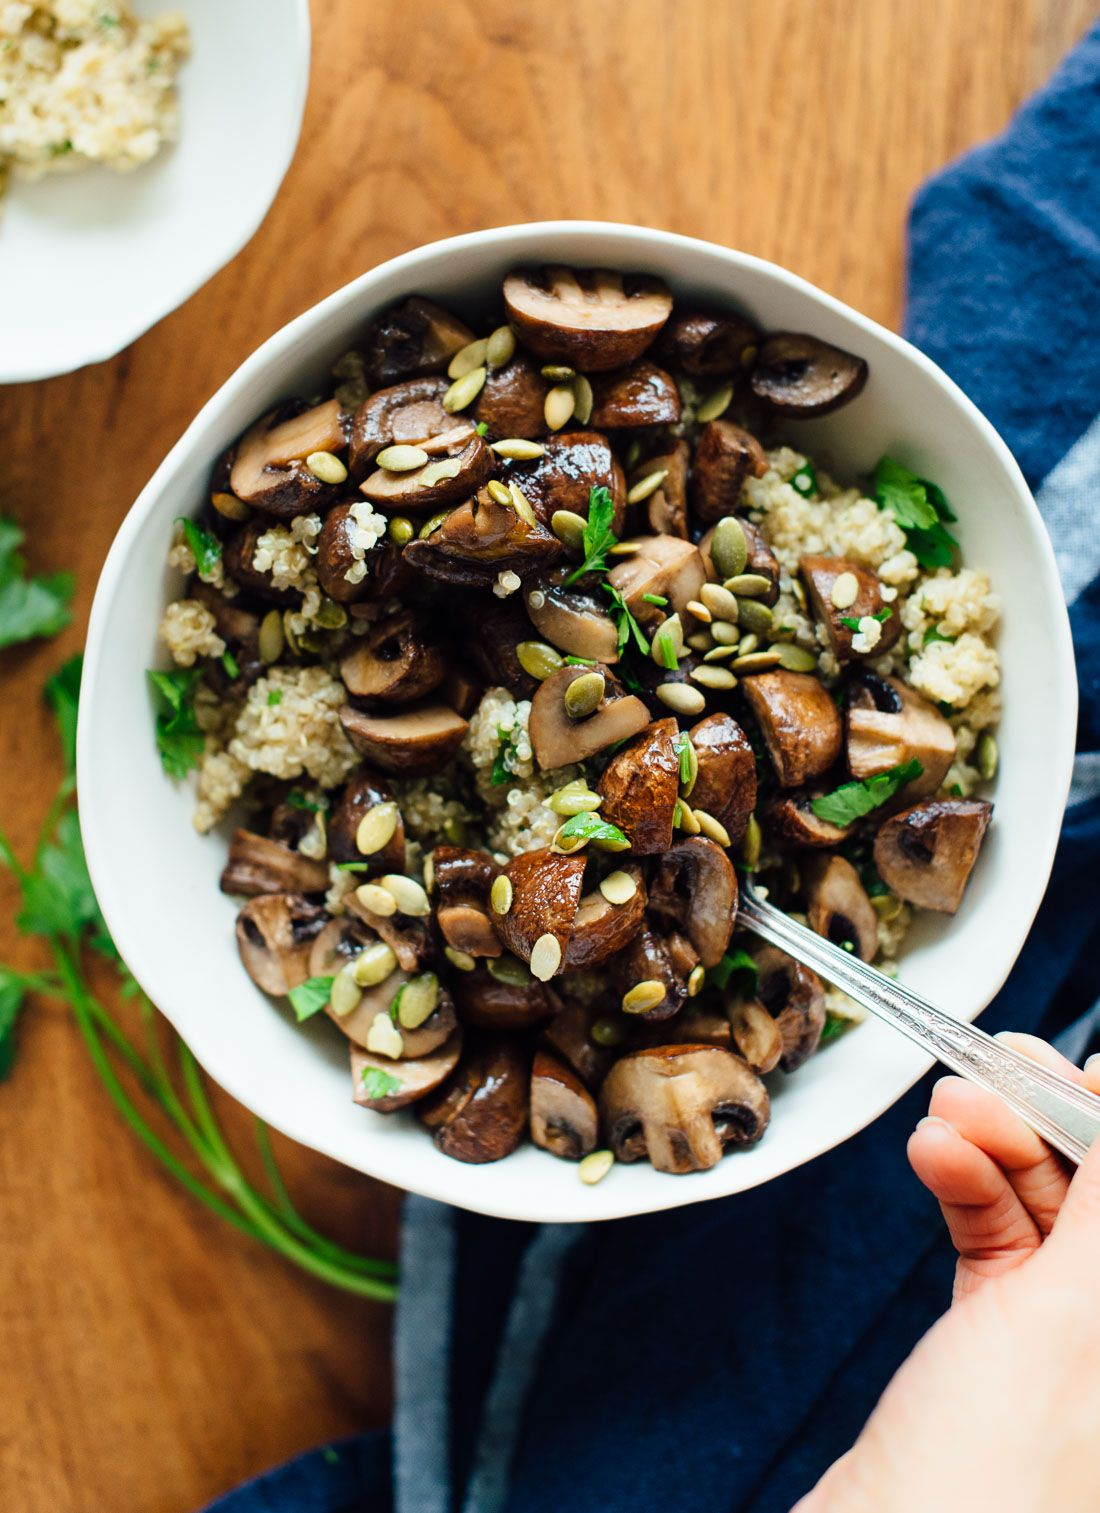 Delicious side dish or light meal of roasted mushrooms on herbed quinoa, topped with toasted pepitas and olive oil! This is a healthy vegetarian recipe.